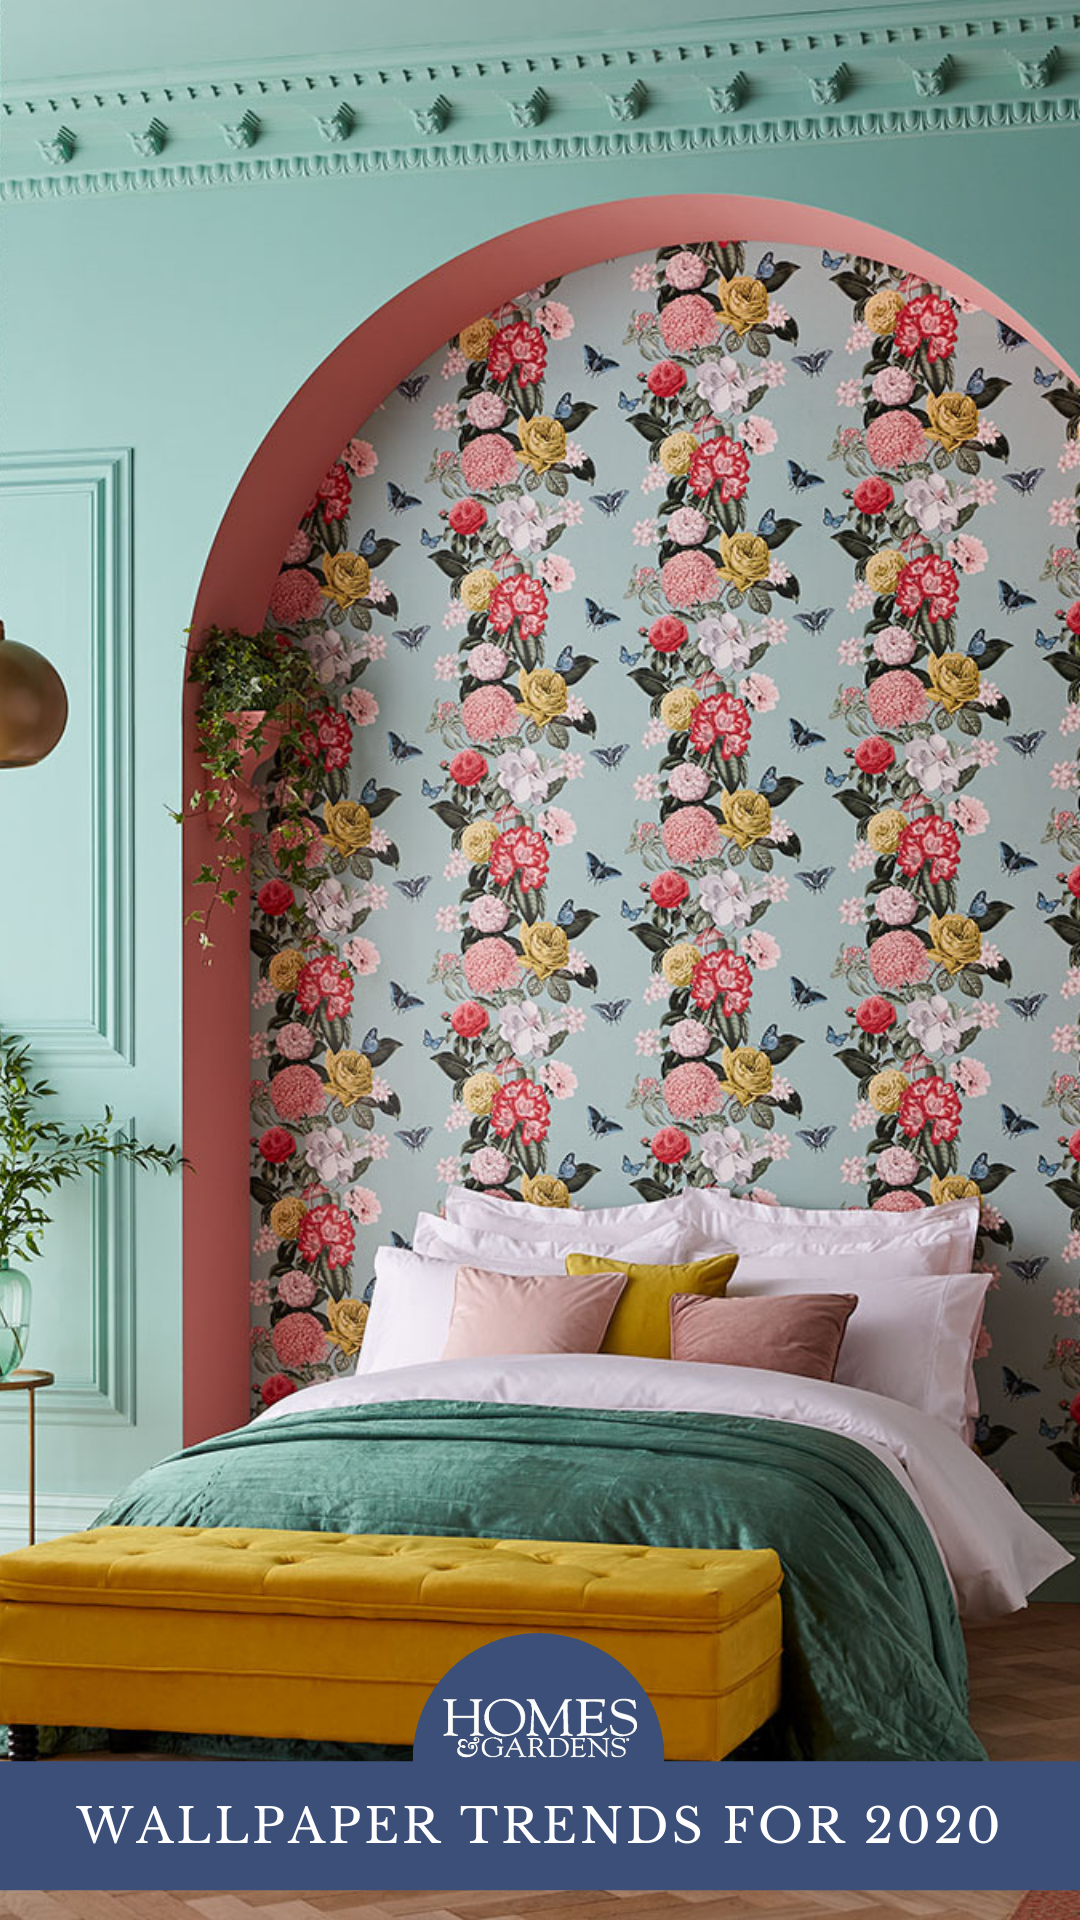 Browse the key wallpaper looks to update your walls for